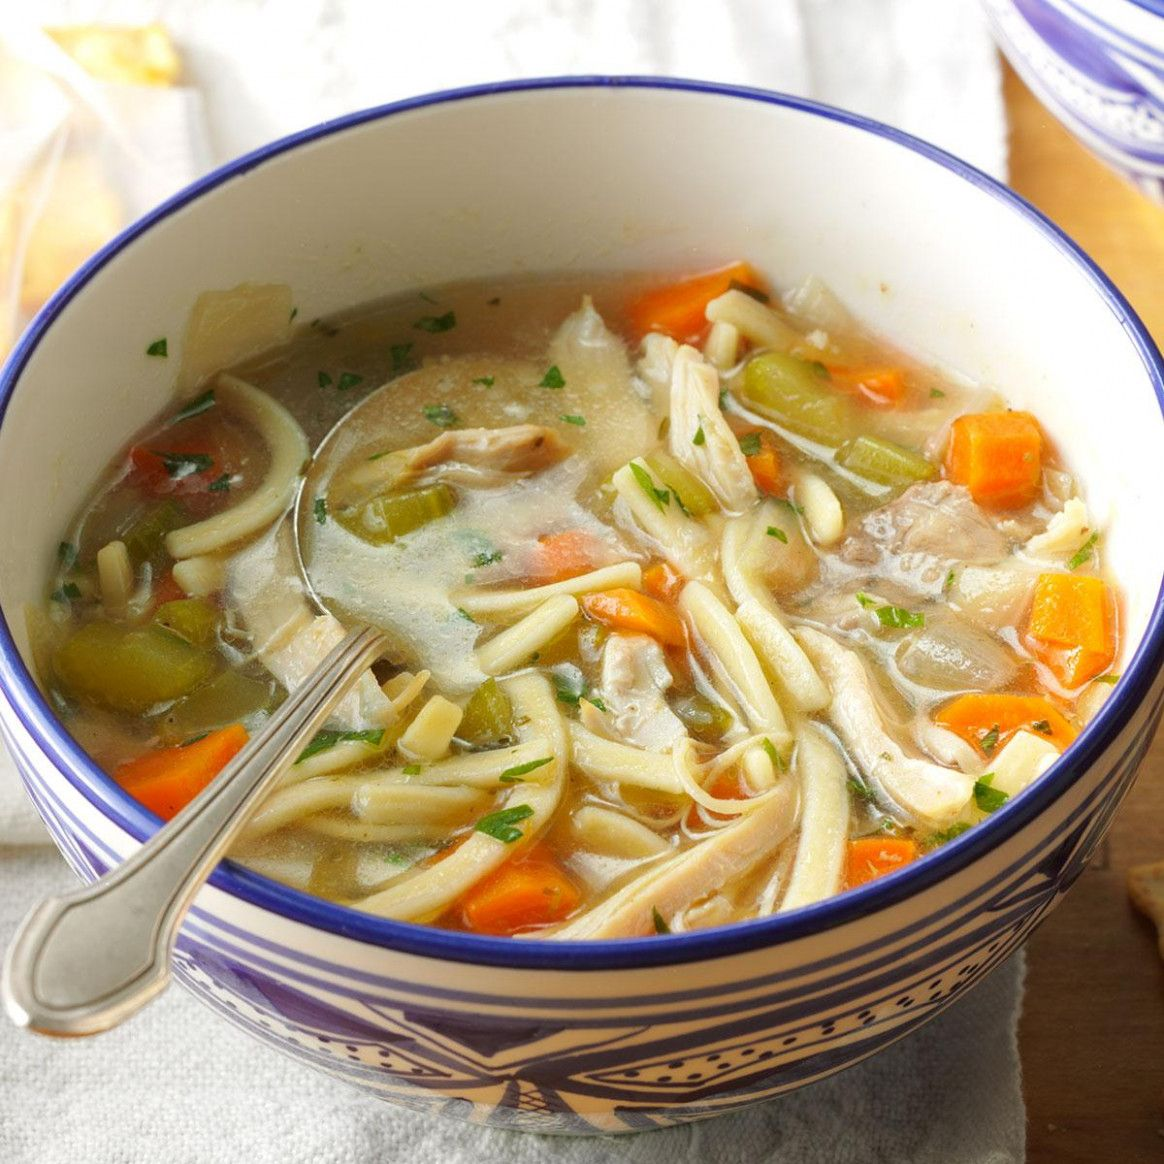 Soup Recipes With Chicken If you haven't put your stockpot